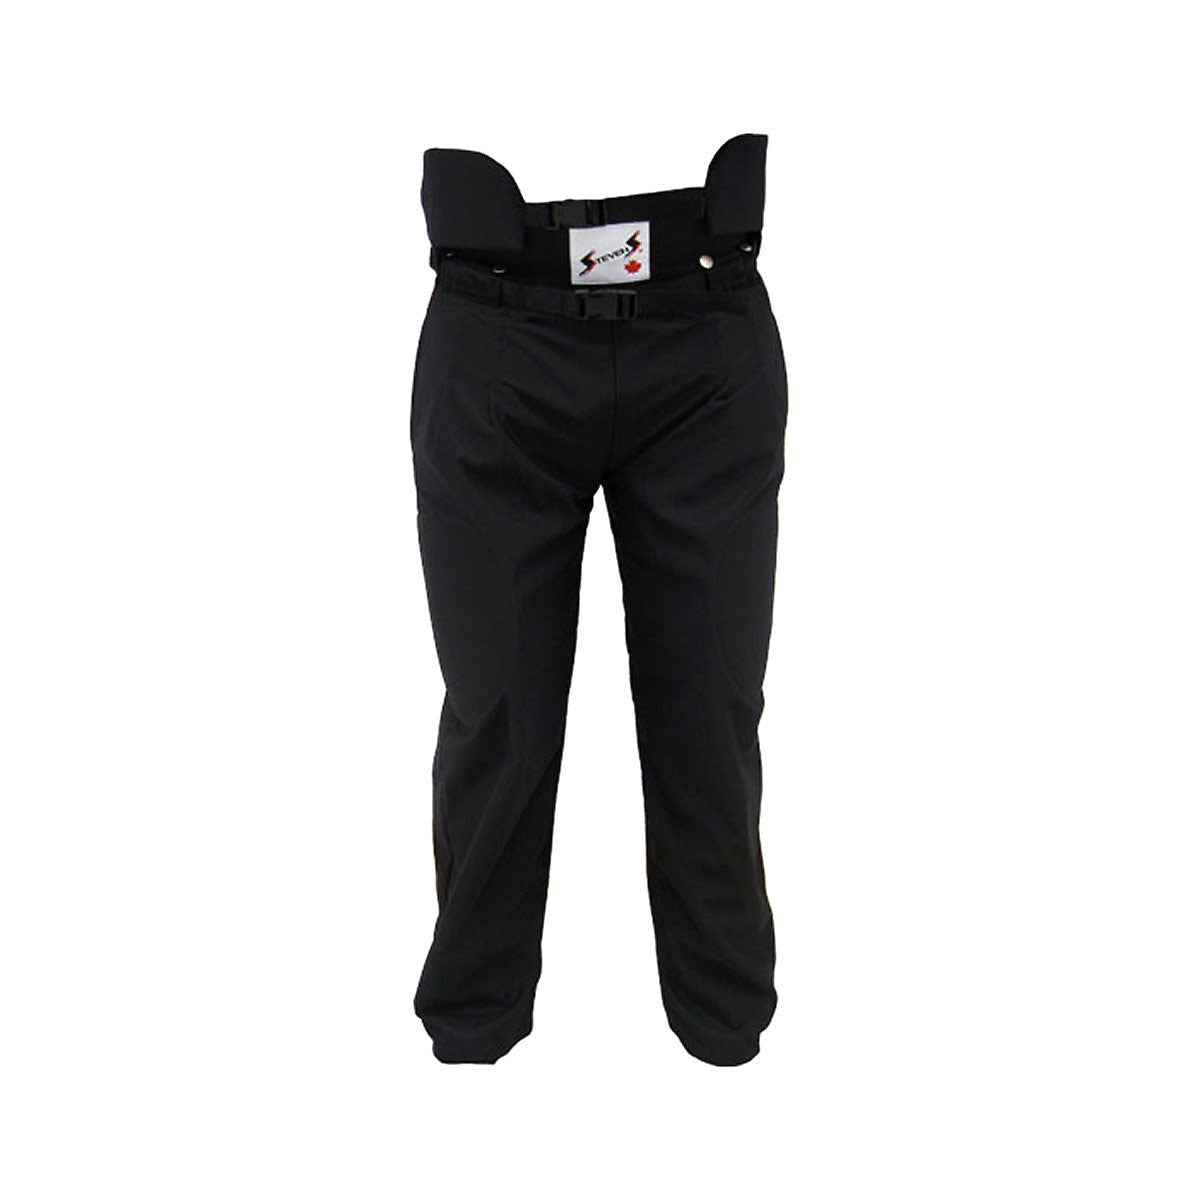 Stevens ST103 Pro Hockey Referee Pants with Integrated Girdle